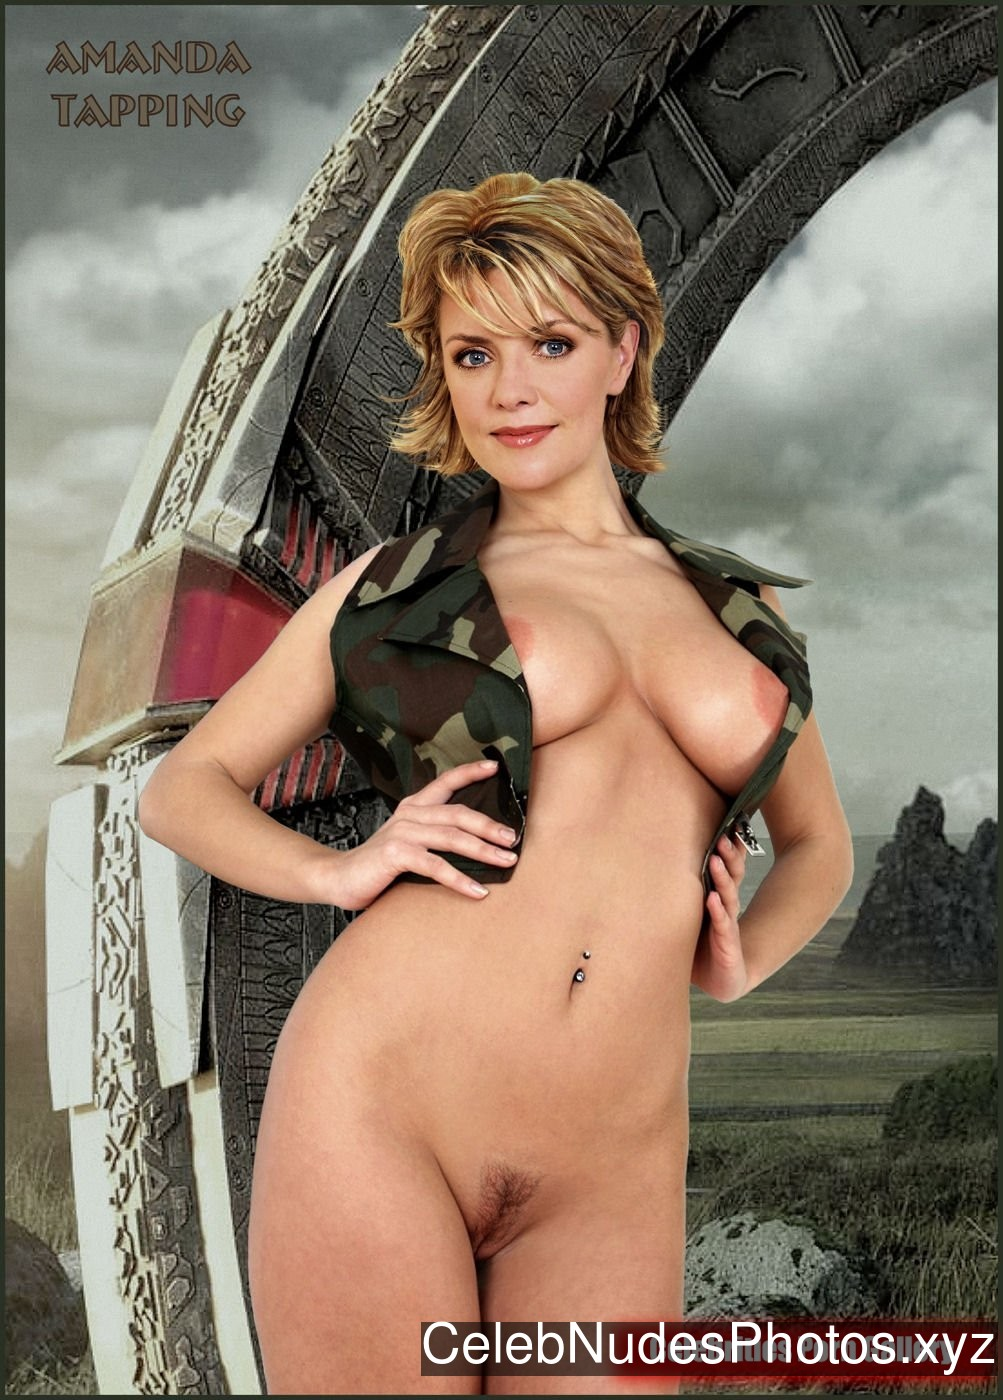 Amanda Tapping Naked celebrity picture sexy 12